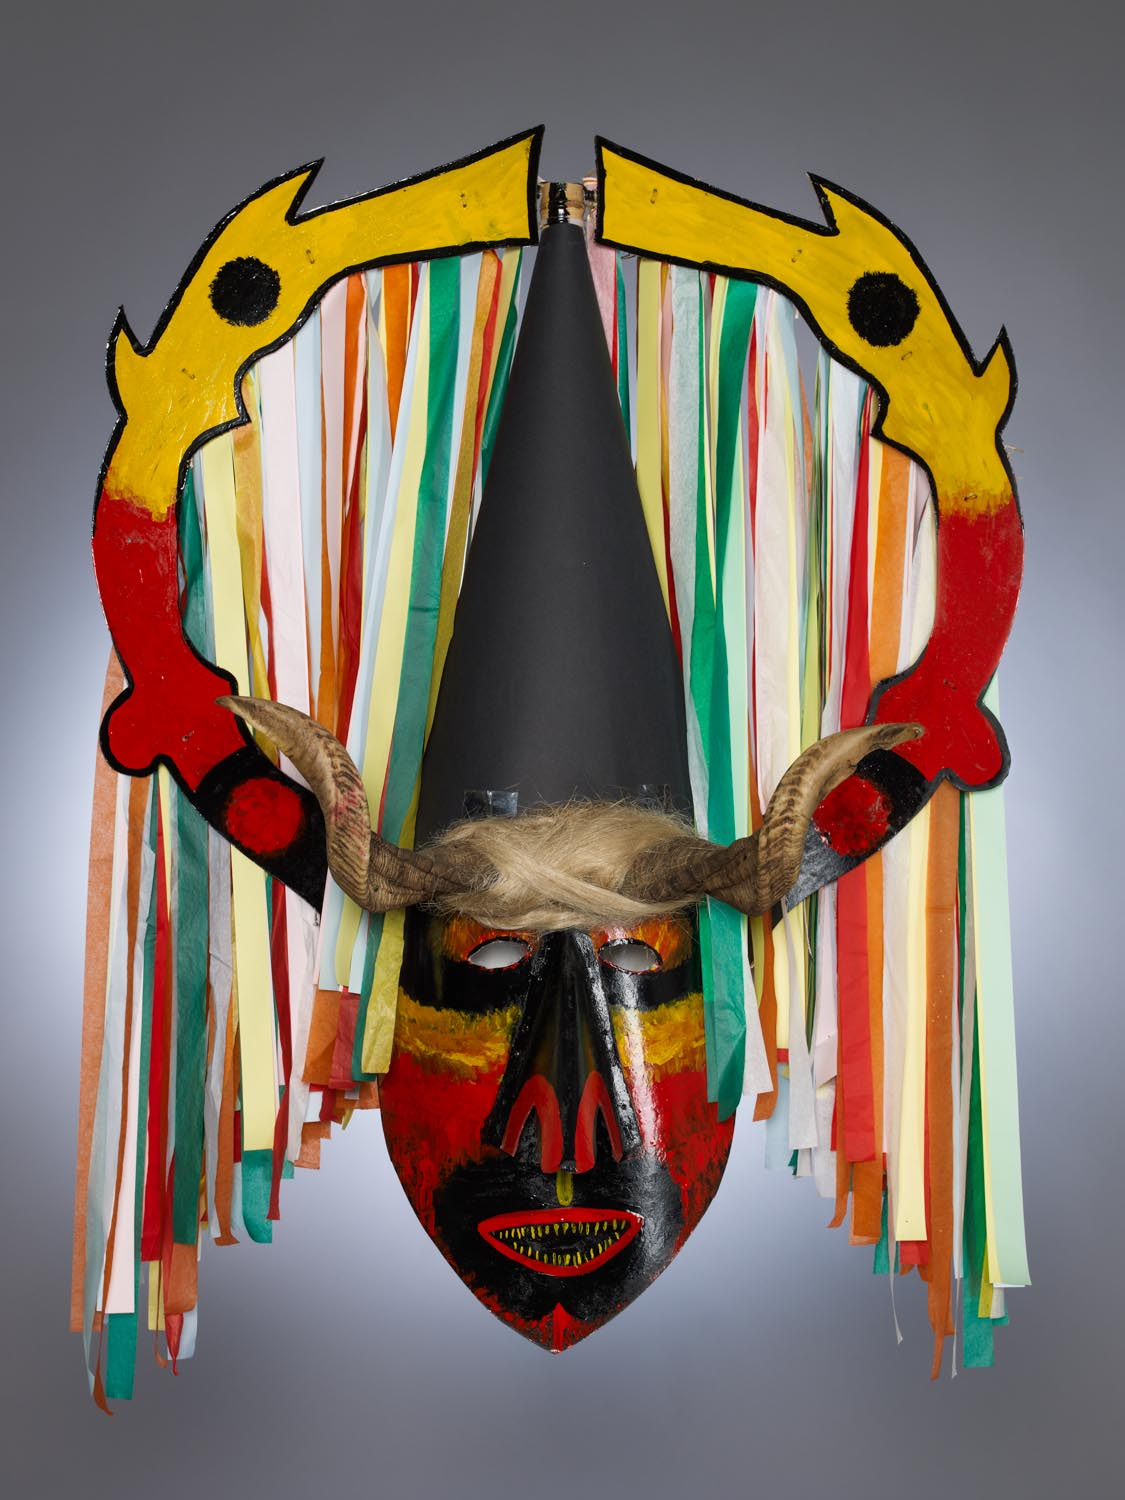 Portuguese Masquerade Costume Mask. Photographed for Dr. Anthony Shelton's book: Heaven & Hell, 2014. MOA CAT: 2956/200 a c.2010. By Caretos da Lagoa, Portugal: Coimbra, Mira.